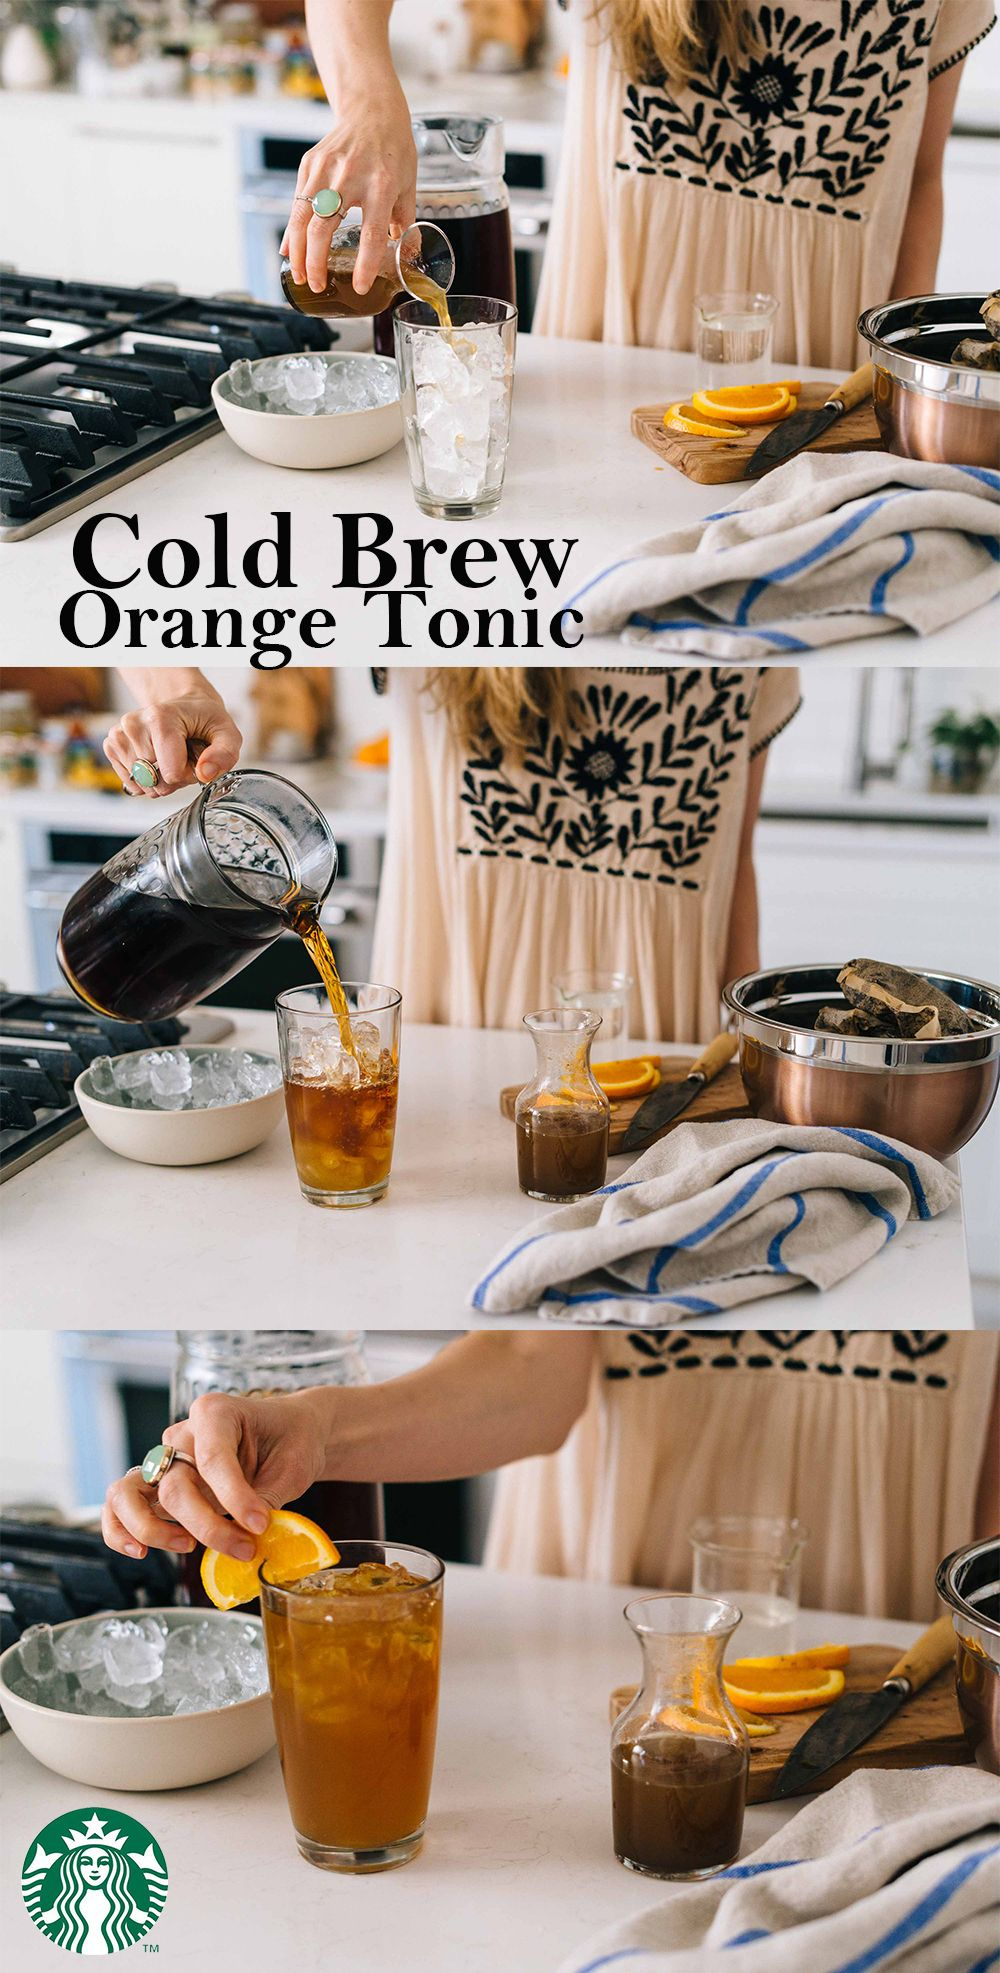 Cold Brew Orange Tonic Recipe in 2020 Coffee, Cold